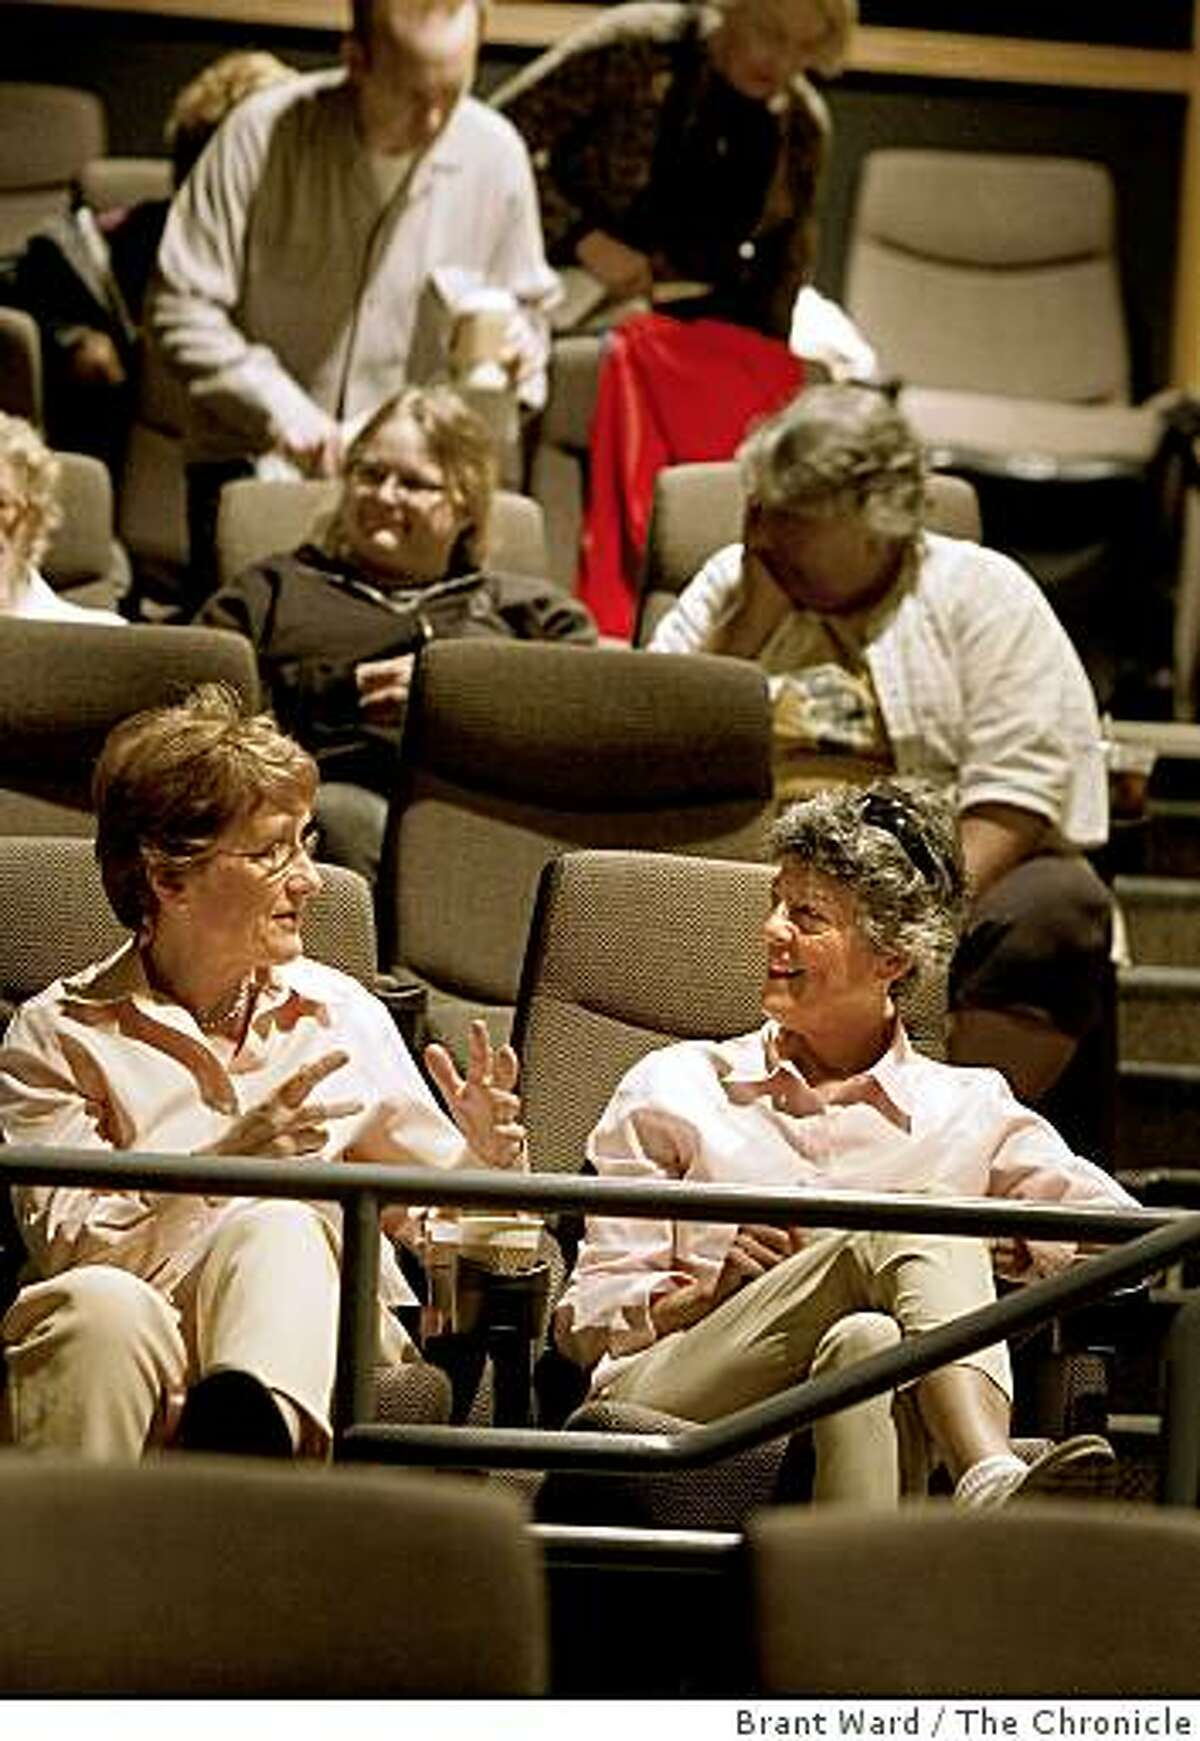 Margaret Anderson (left) and Terry Seligman find some good seats in the balcony and talk before the screening. The Keyclub, soon to be called the Cinema Club, is for film lovers and meets Sundays at the Sundance Kabuki to screen films, which members have no idea what the title will be.